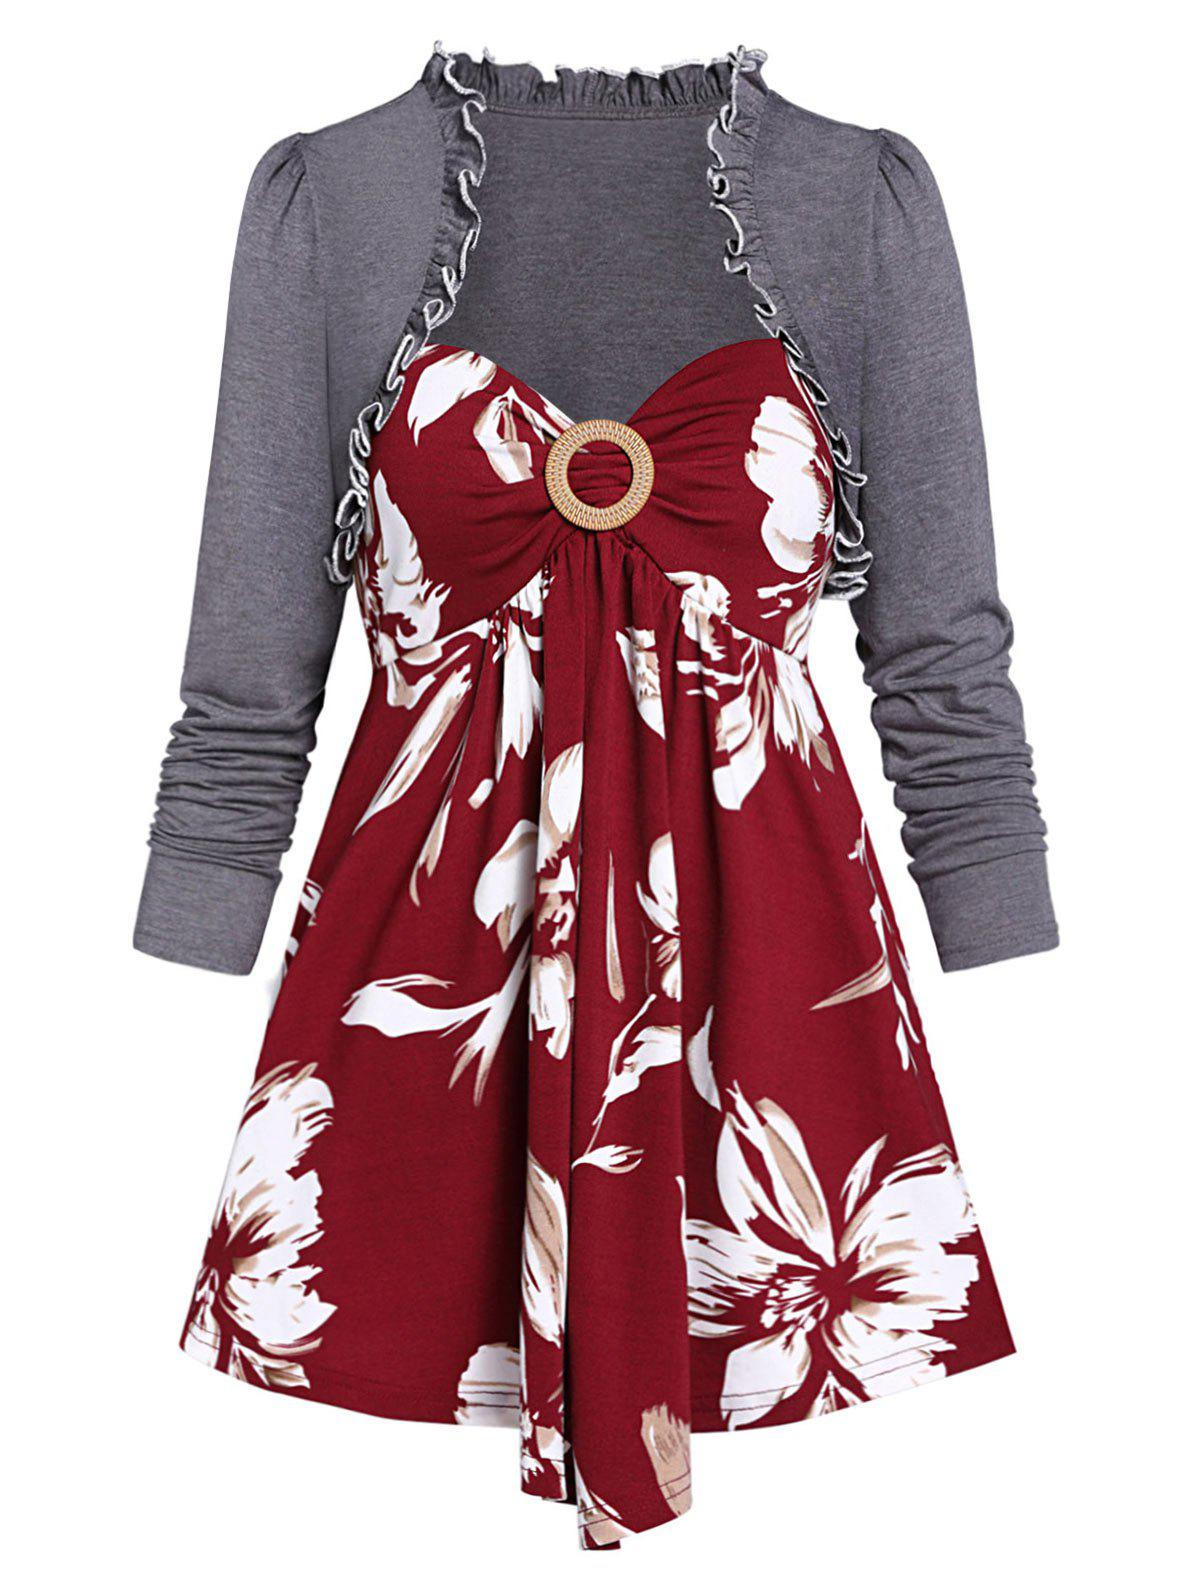 Solid Ruffle T Shirt with Floral Print Tank Top - RED WINE XL